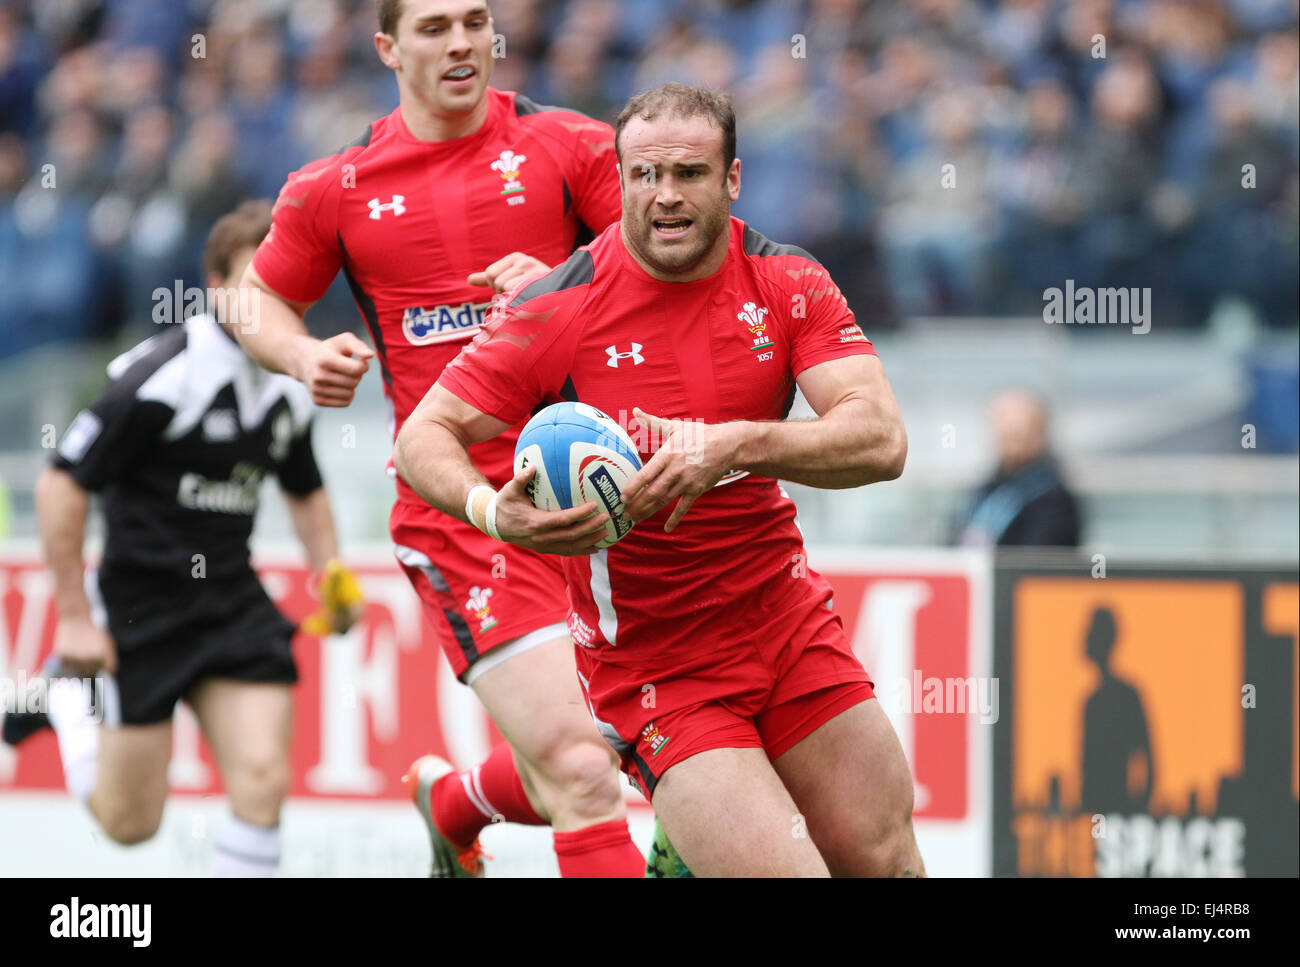 Rome, Italy. 21st March, 2015. Wales's player Jamie Roberts runs with the ball during the Six Nations international - Stock Image